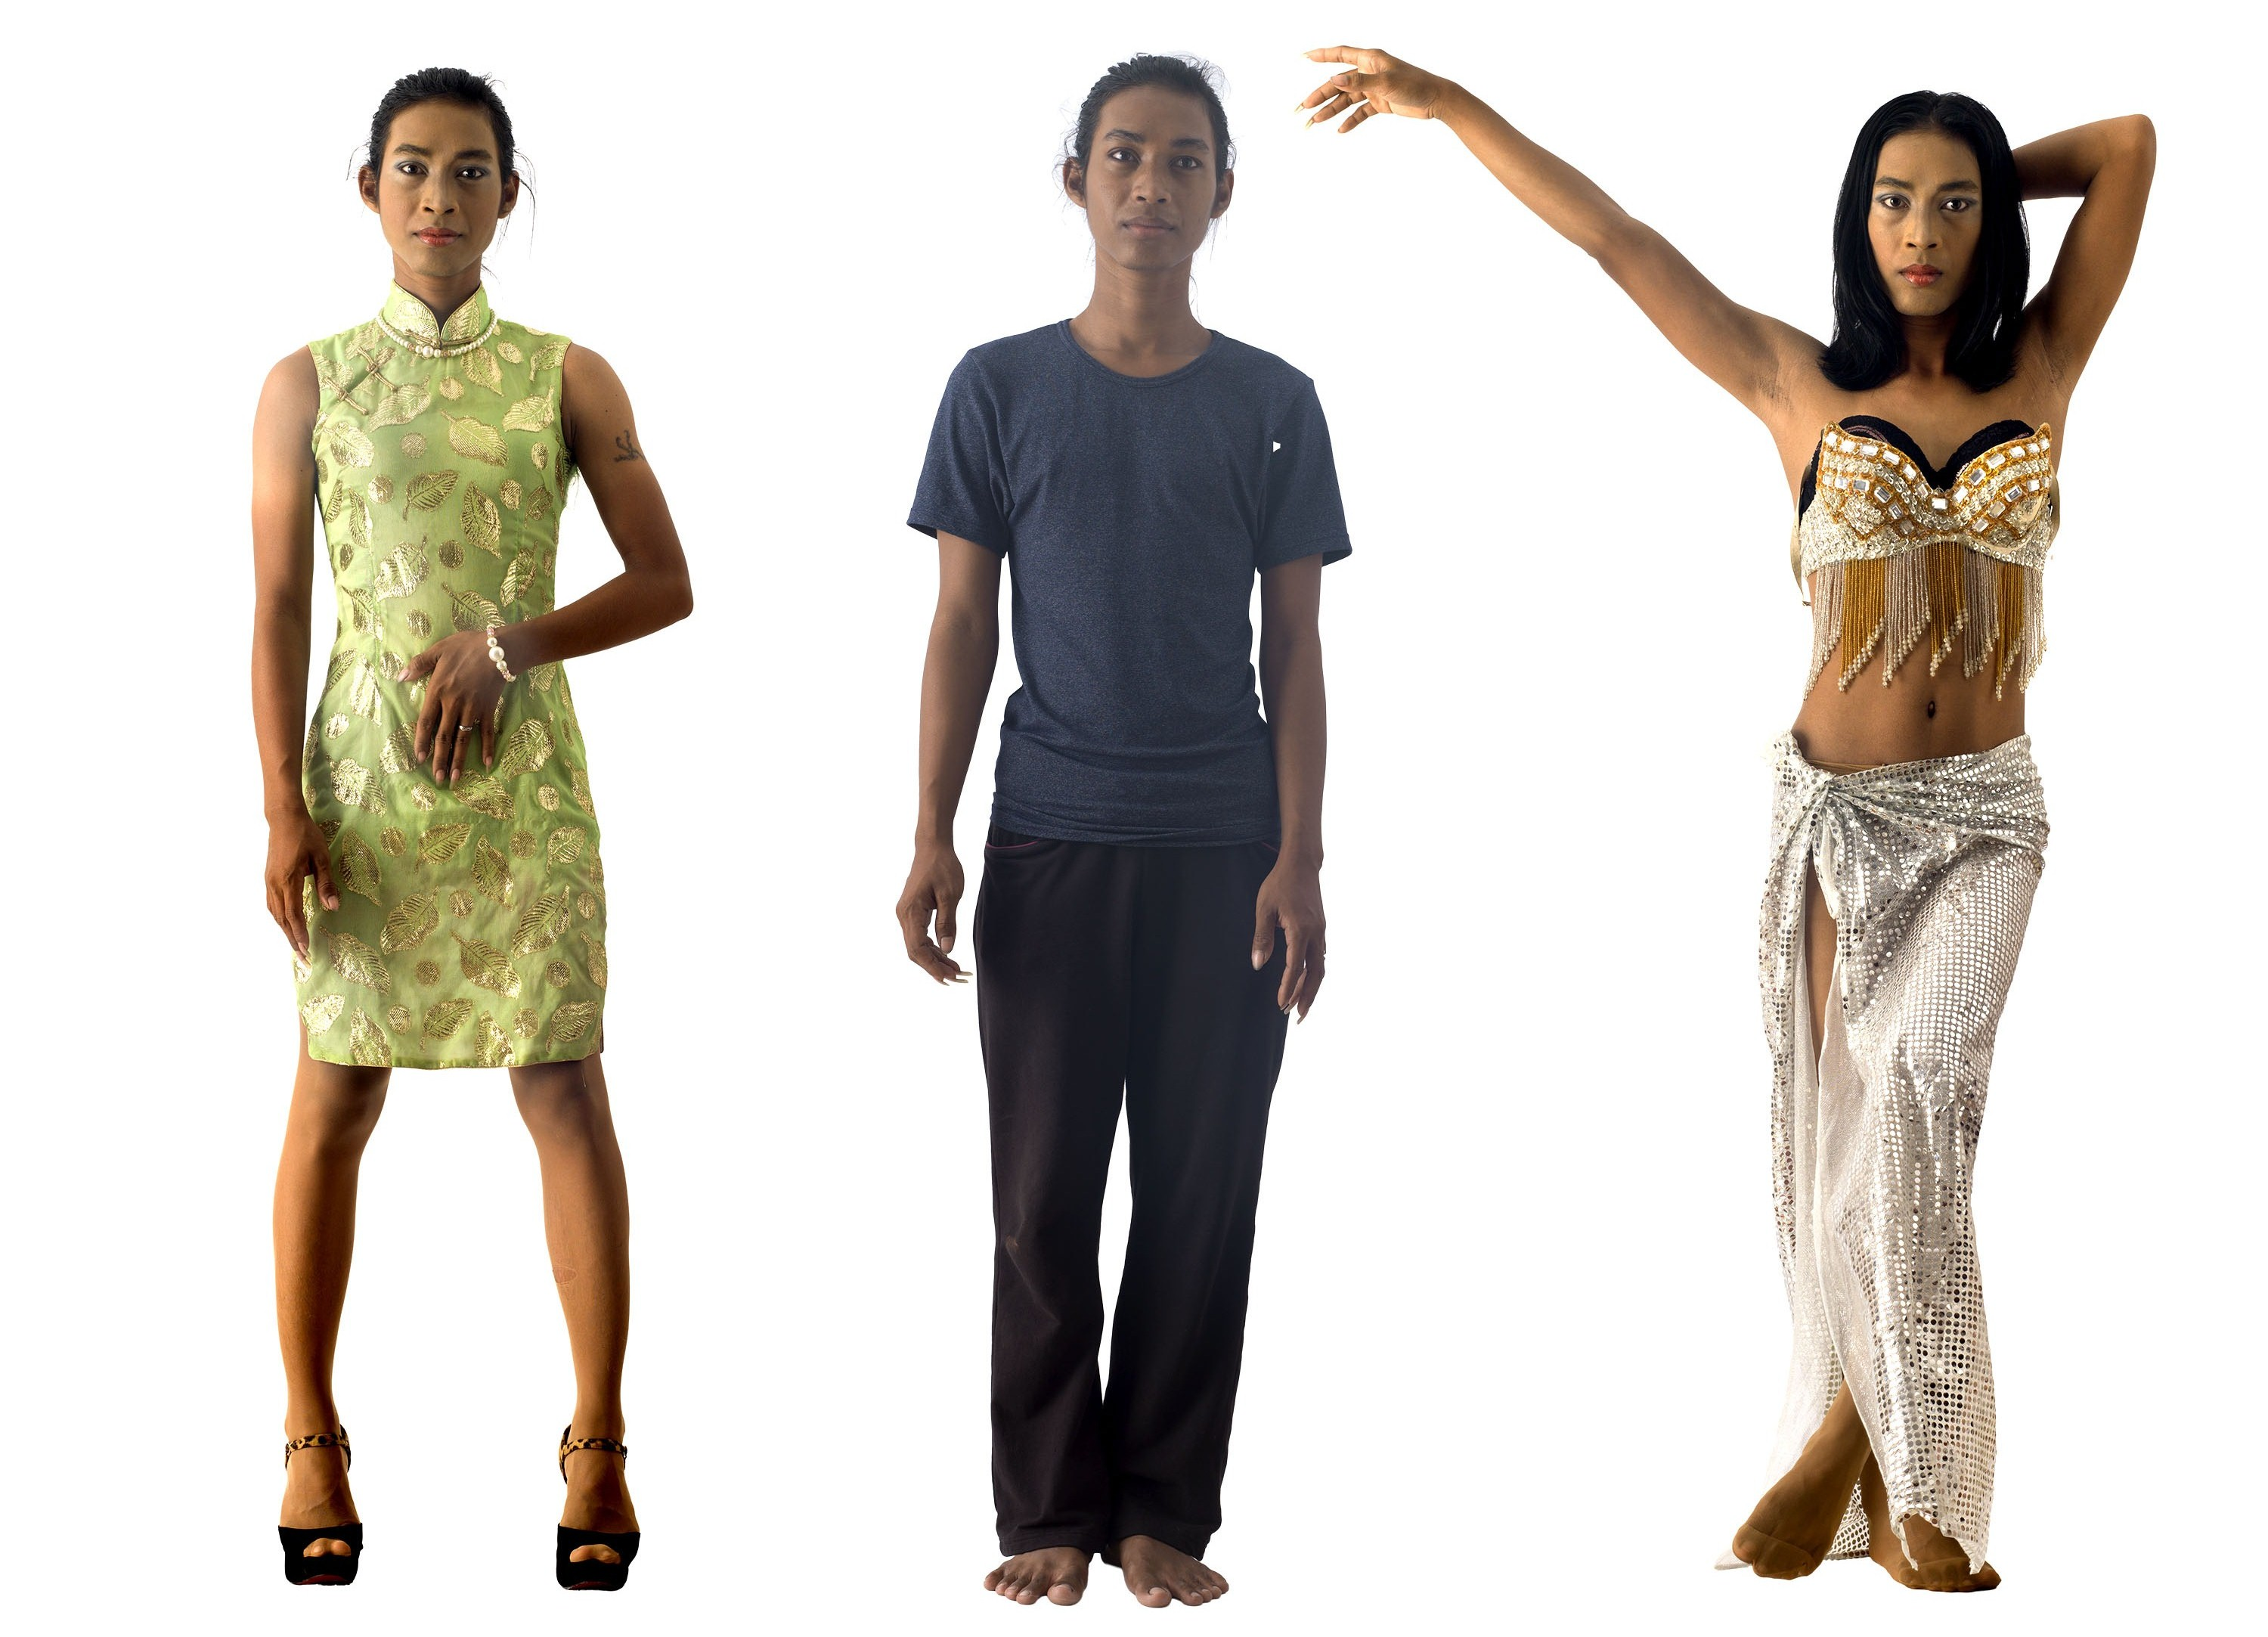 Drag in Cambodia: Bourra Vong / Dara - Dancing by Martijn Crowe